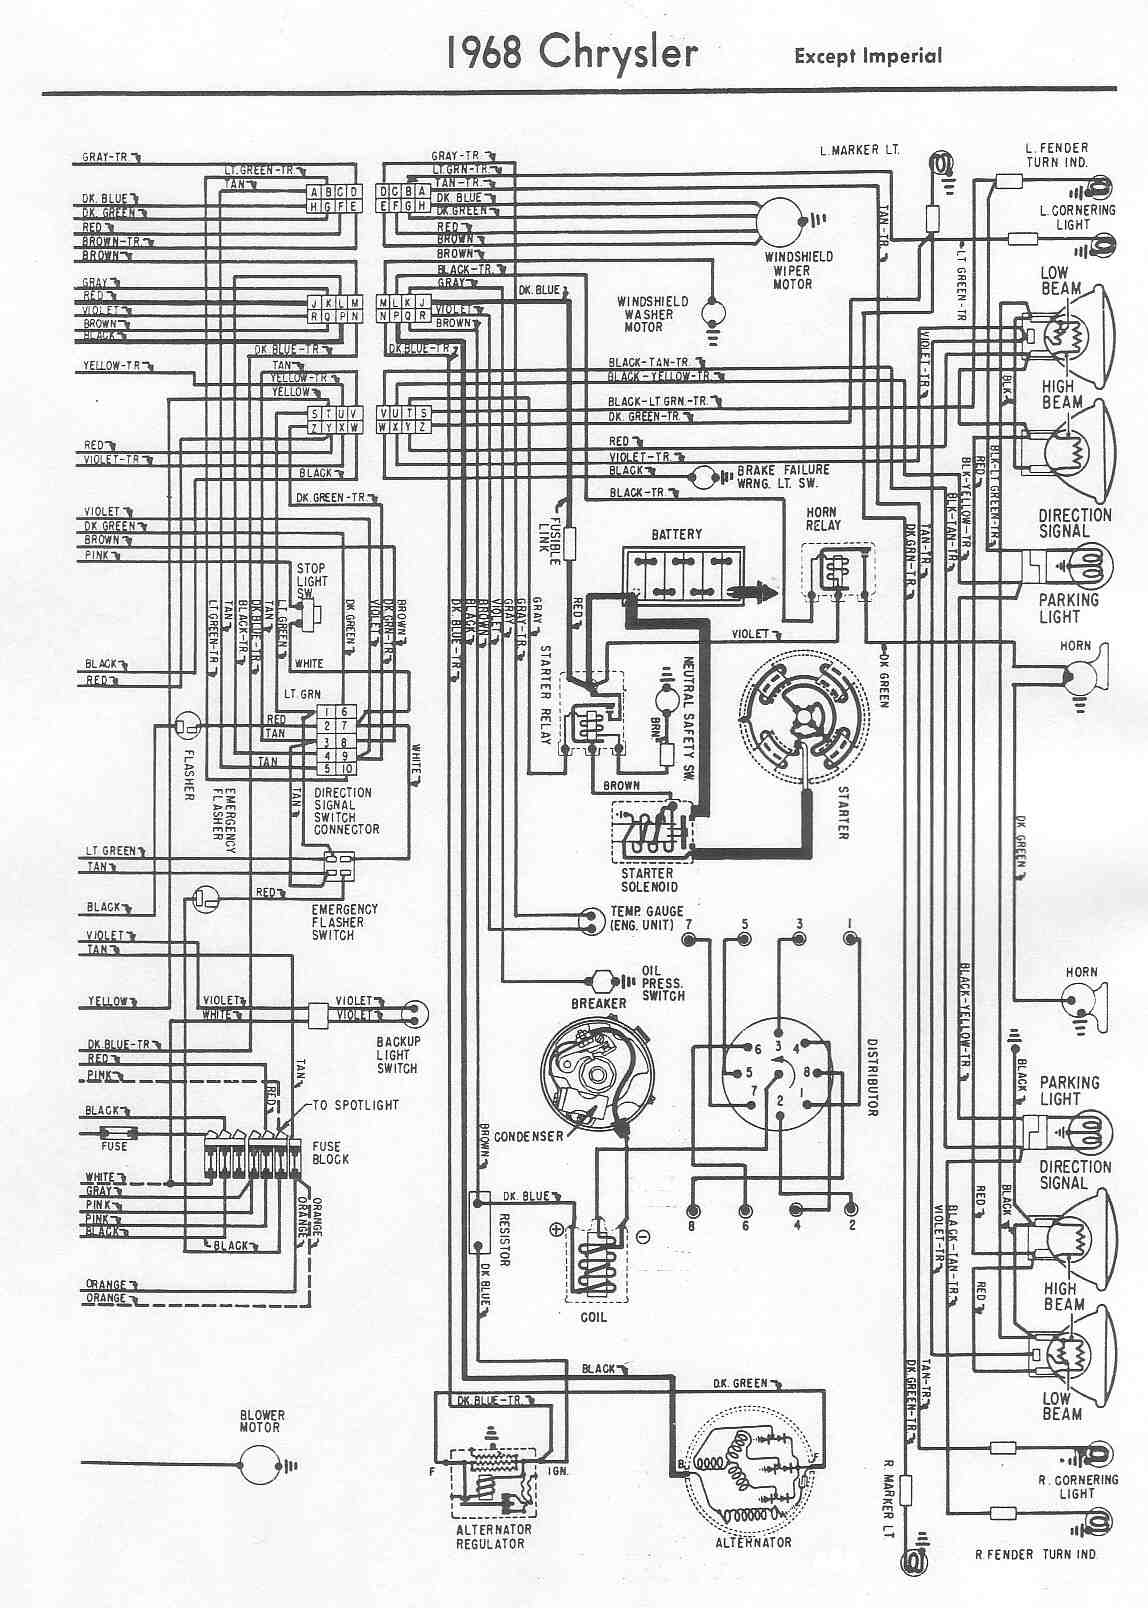 hight resolution of 68 dodge coronet wiring diagram simple wiring schema 1962 corvair wiring diagram 1965 dodge coronet